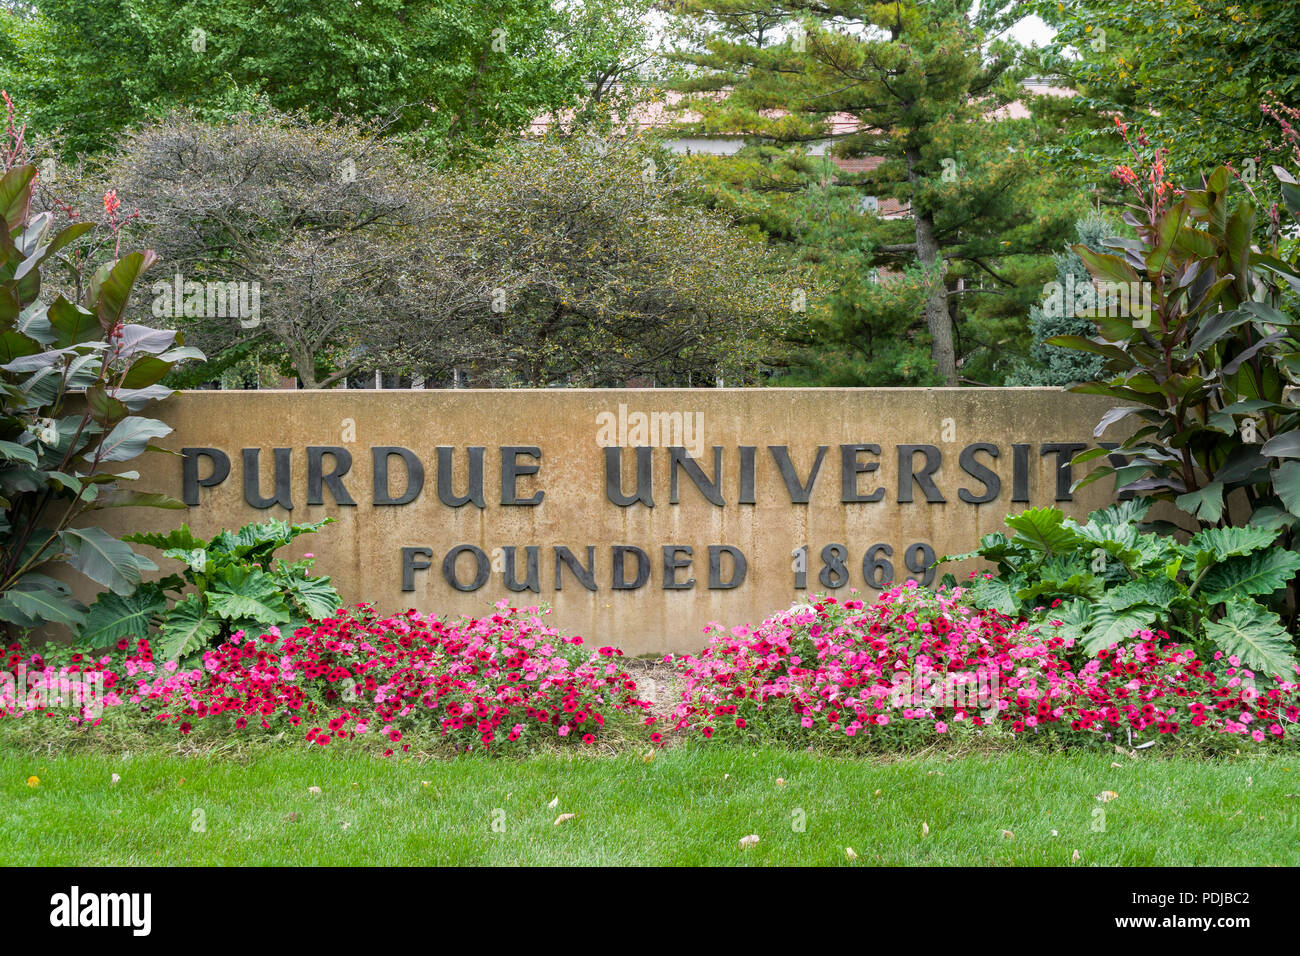 WEST LAFAYETTE, IN/USA - OCTOBER 22, 2017: Entrance Sign on the campus of the Purdue University. - Stock Image